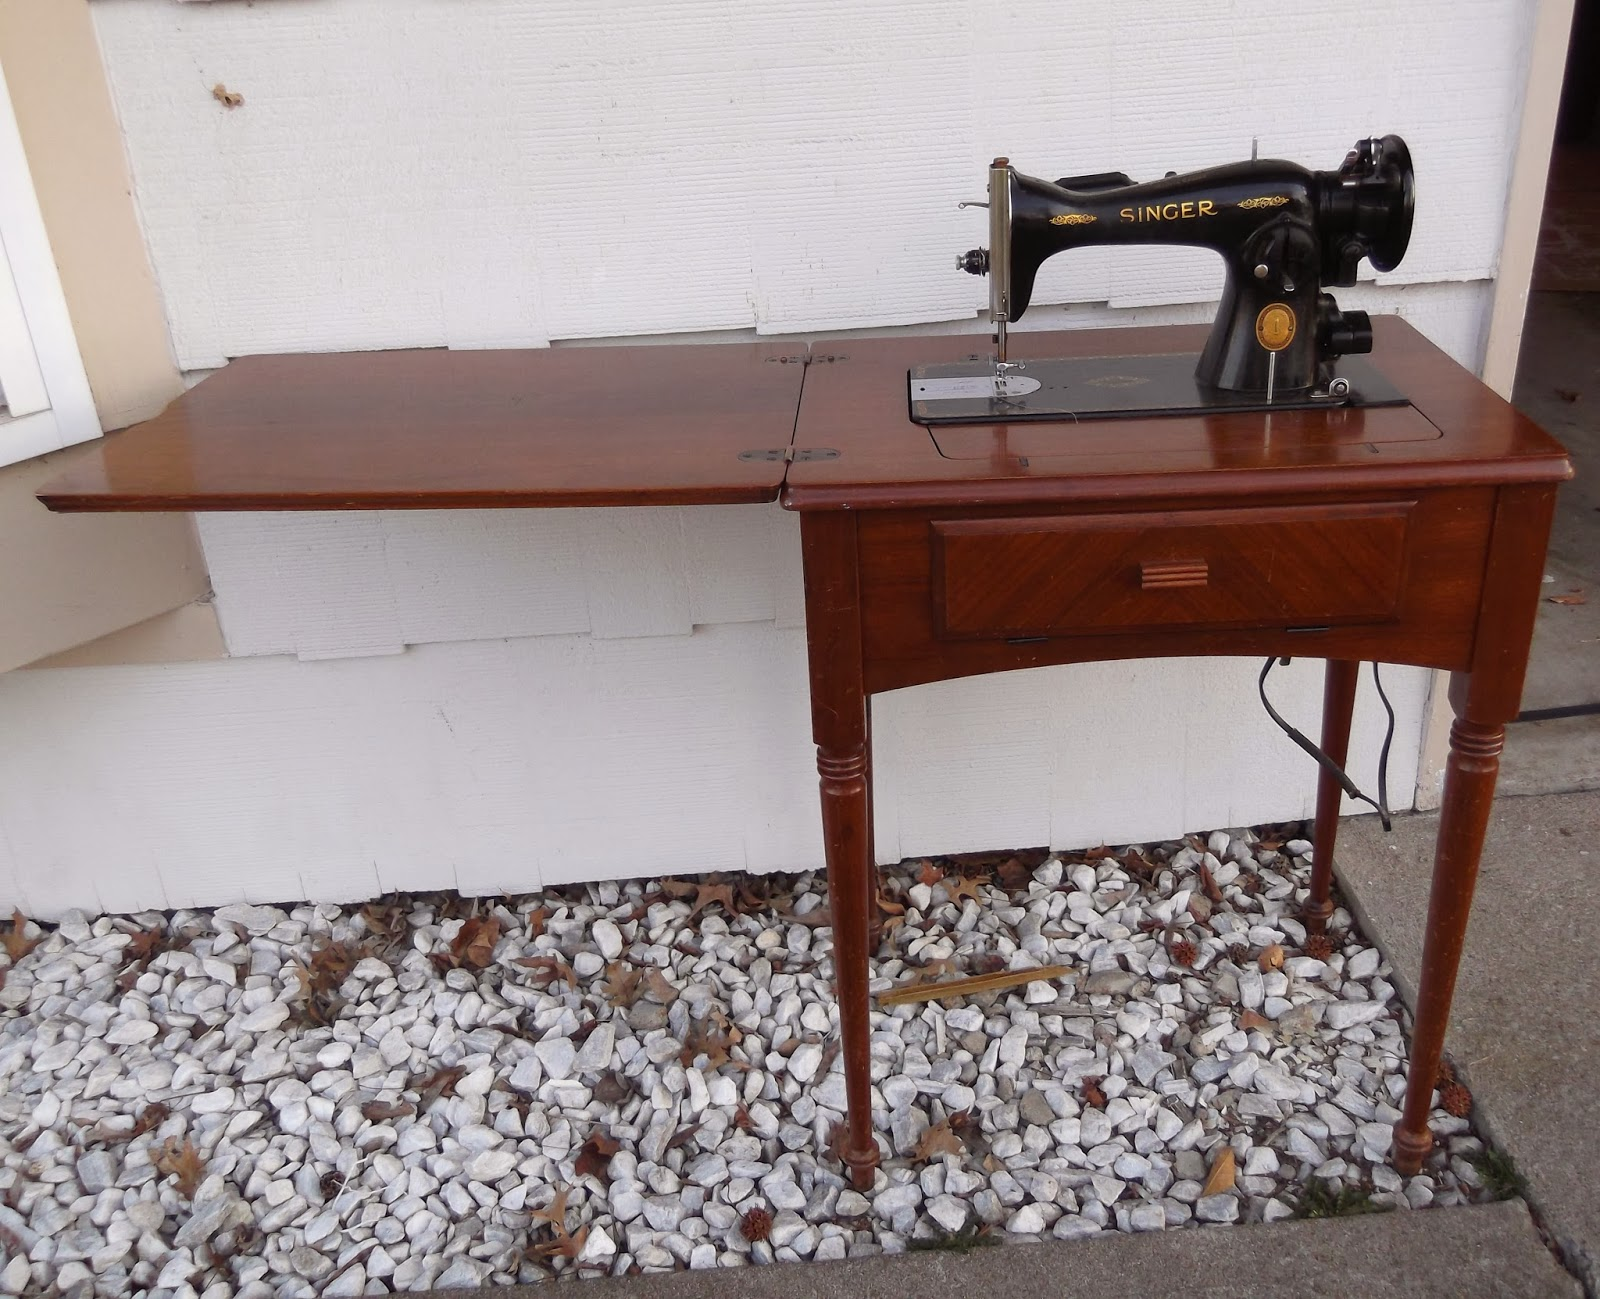 Thrifty 31 blog vintage sewing table makeover vintage sewing table makeover sciox Choice Image